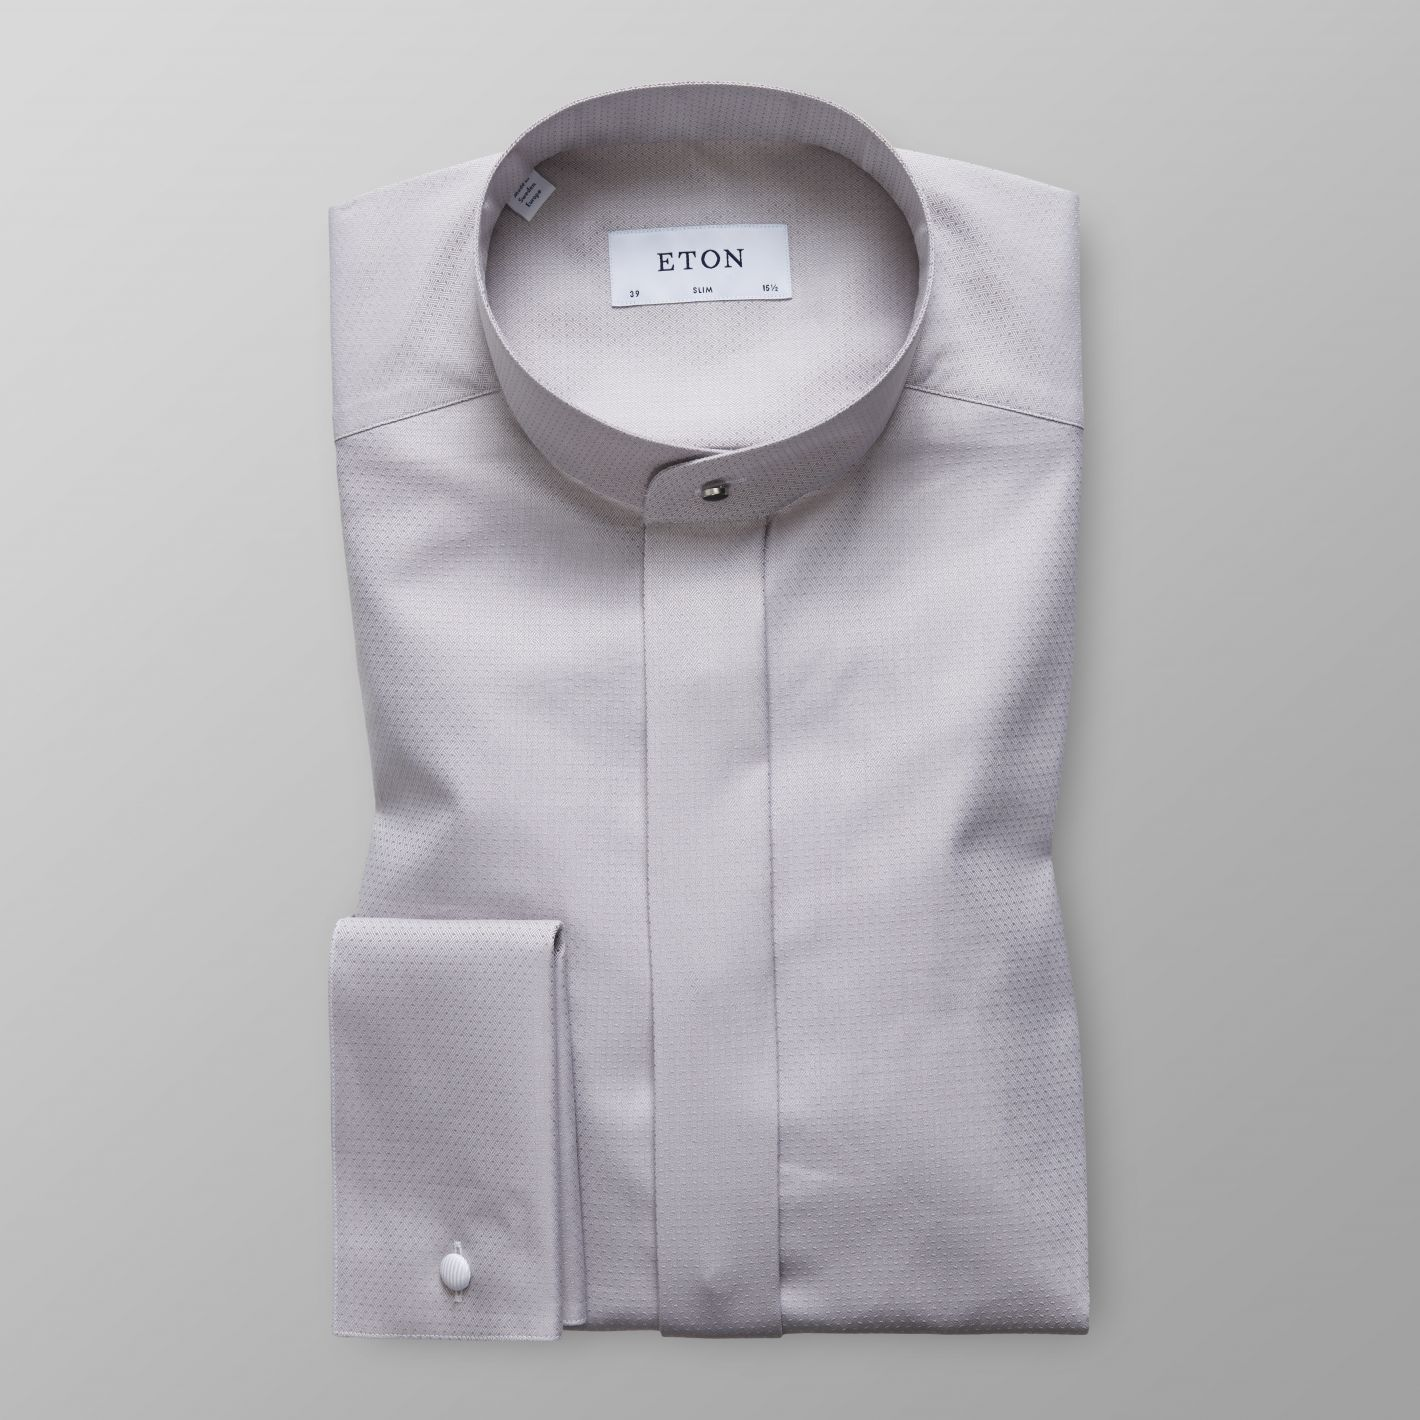 Grey French Cuff Shirt With Banded Collar Eton Global